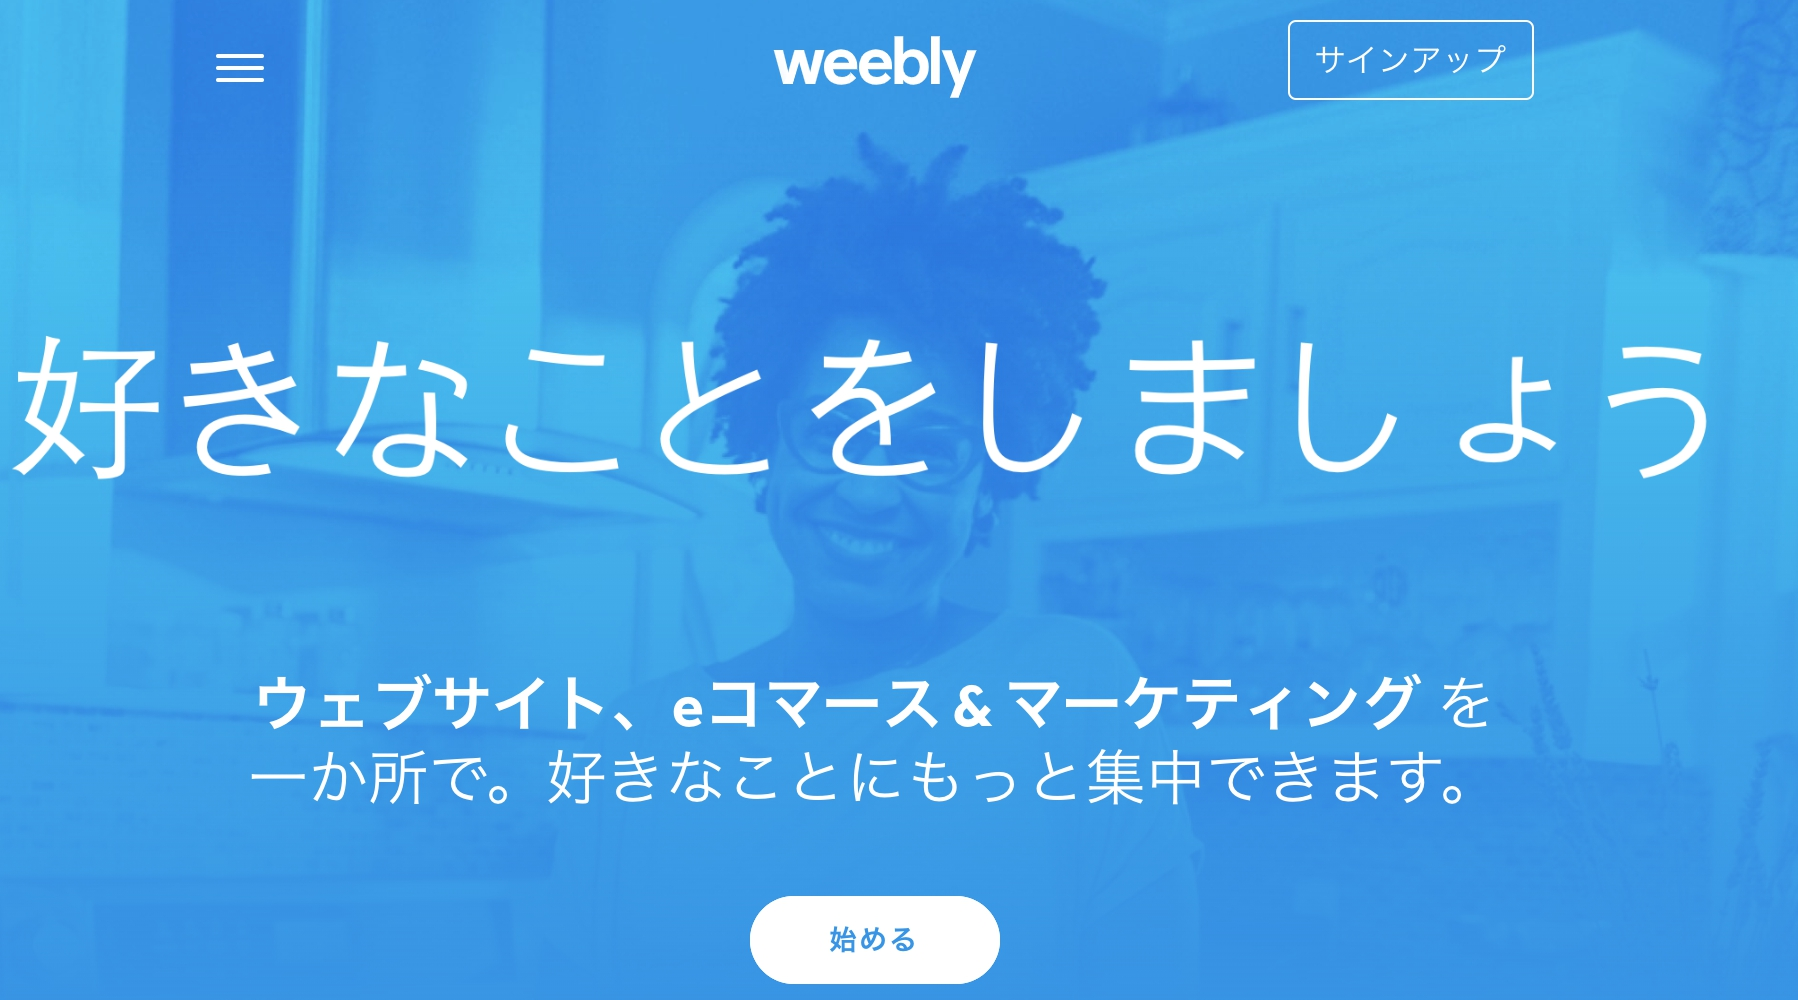 weeblyを比較!メリット・デメリット・料金をグーペやwordpressと比べてみた